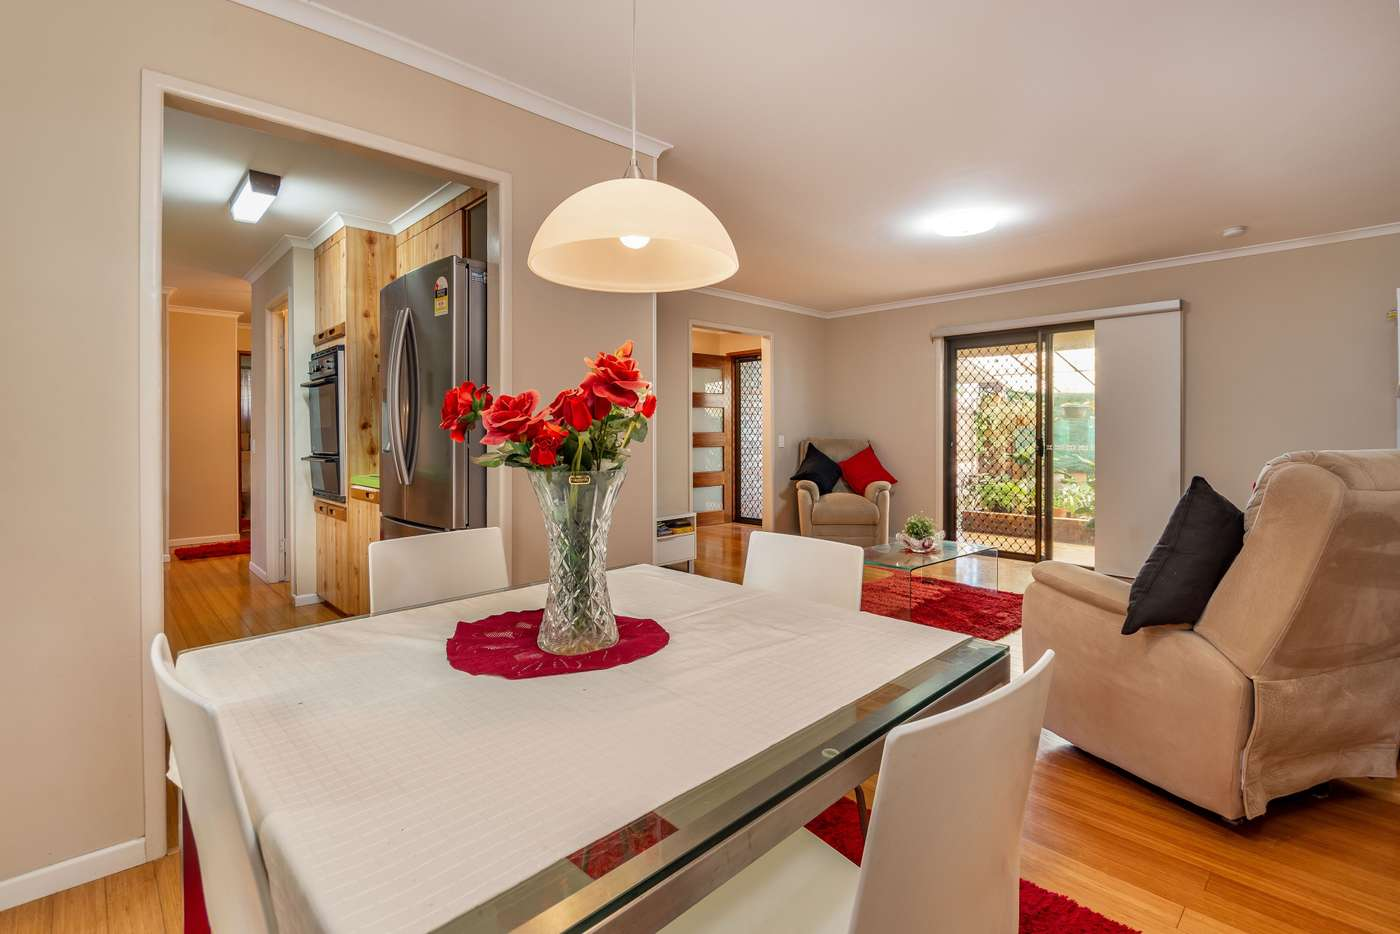 Main view of Homely house listing, 17 Kittyhawk Street, Bongaree QLD 4507